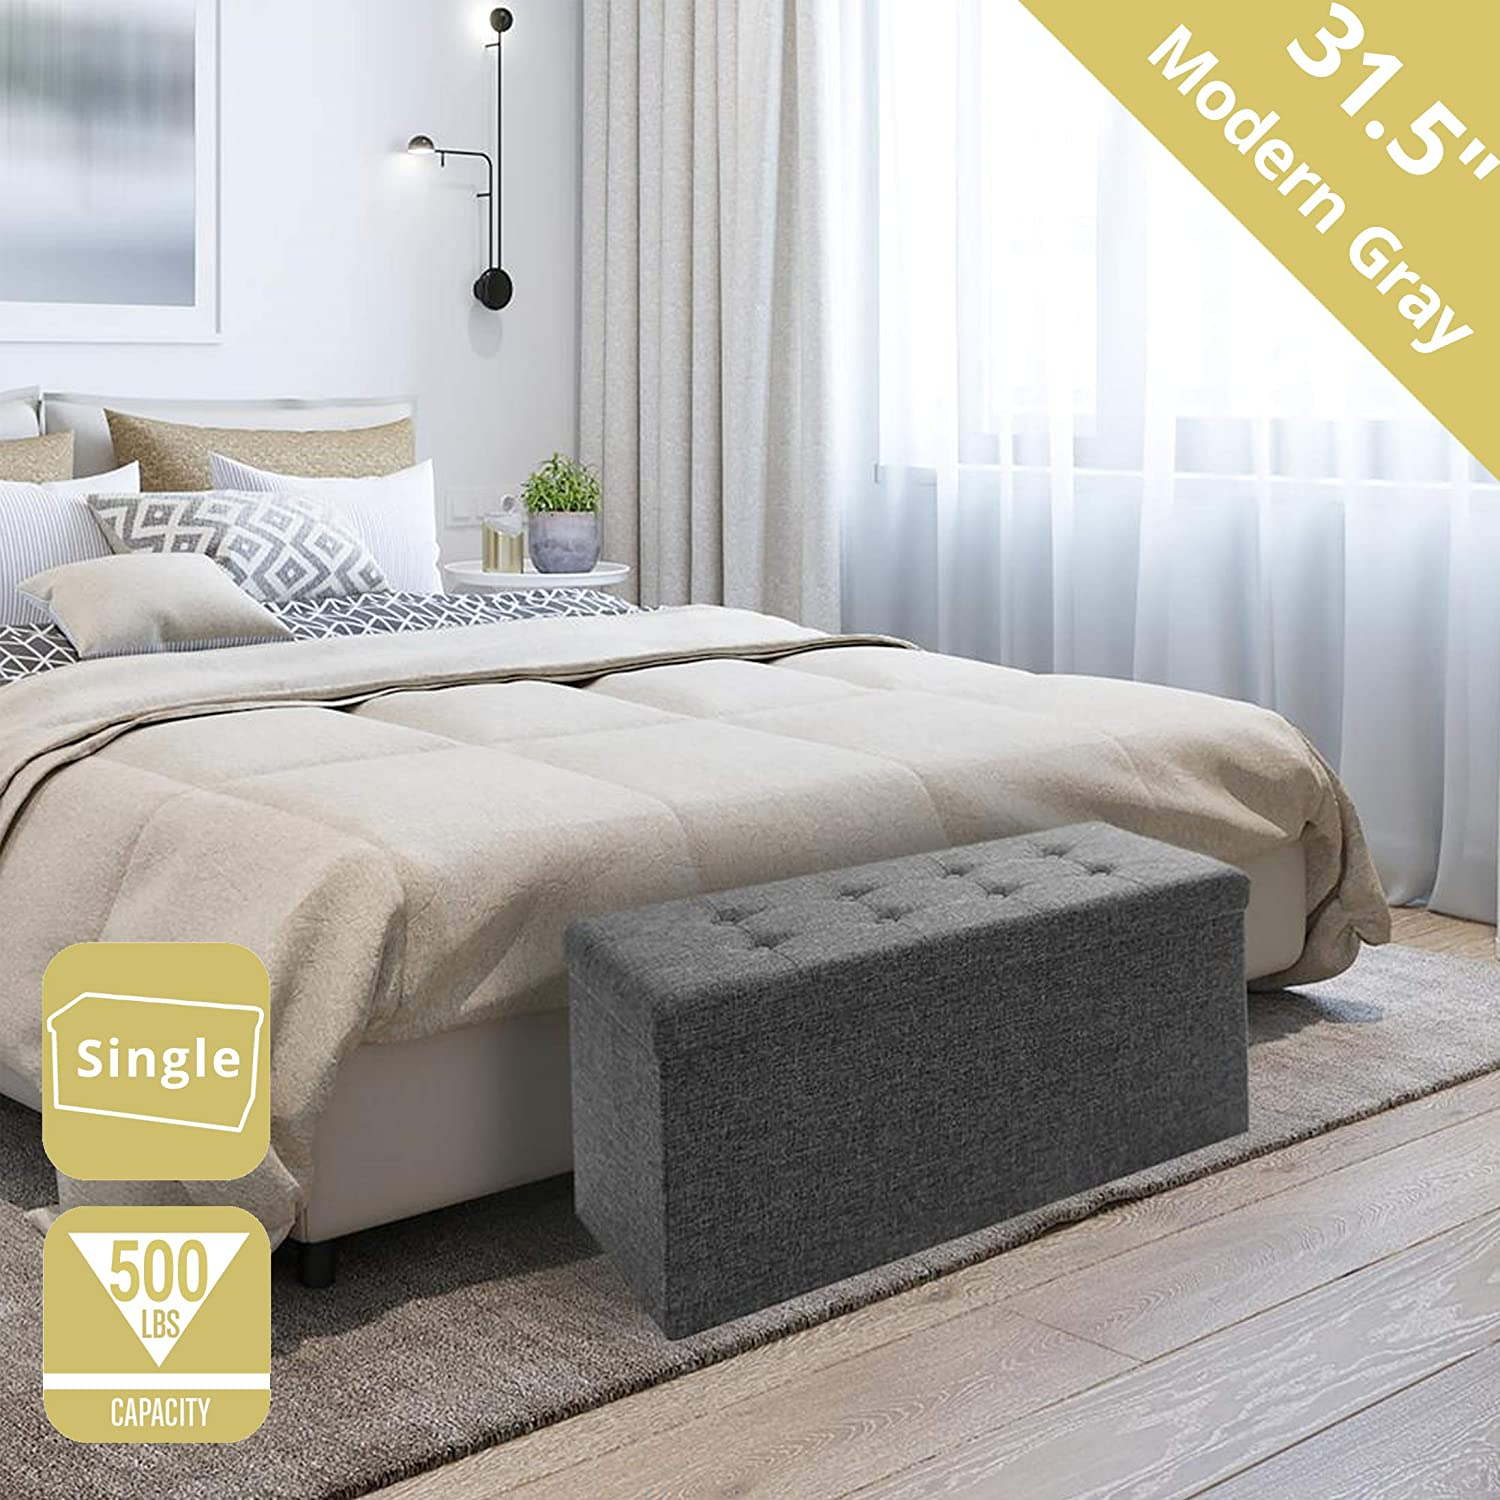 """Seville Classics 31.5"""" Foldable Tufted Storage Bench Footrest Toy Chest Coffee Table Trunk Ottoman, Single, Charcoal Gray: Kitchen & Dining"""